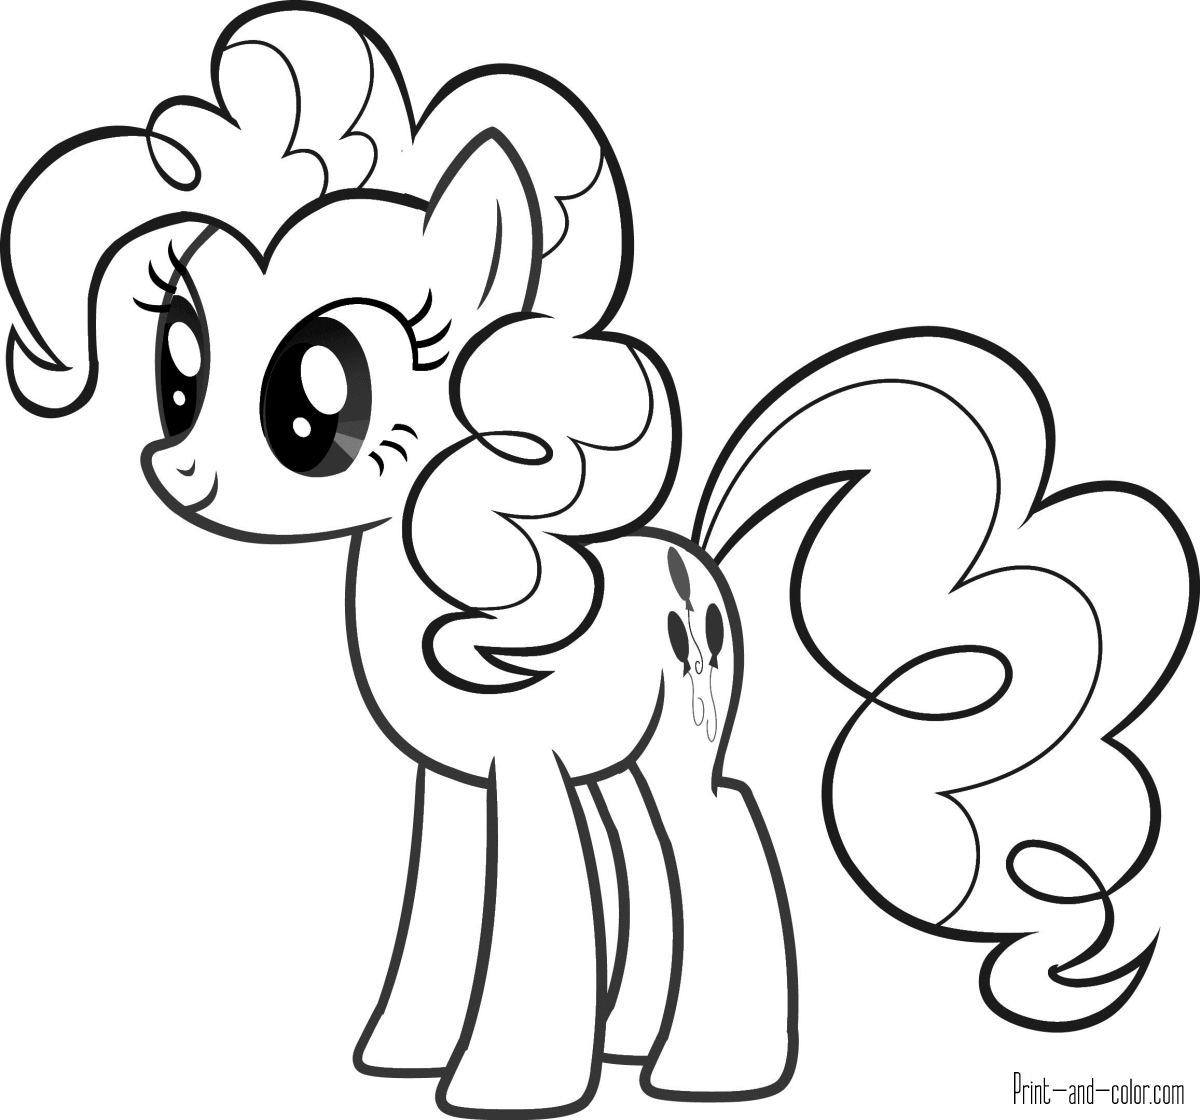 my little pony for coloring my little pony coloring pages print and colorcom my little coloring for pony